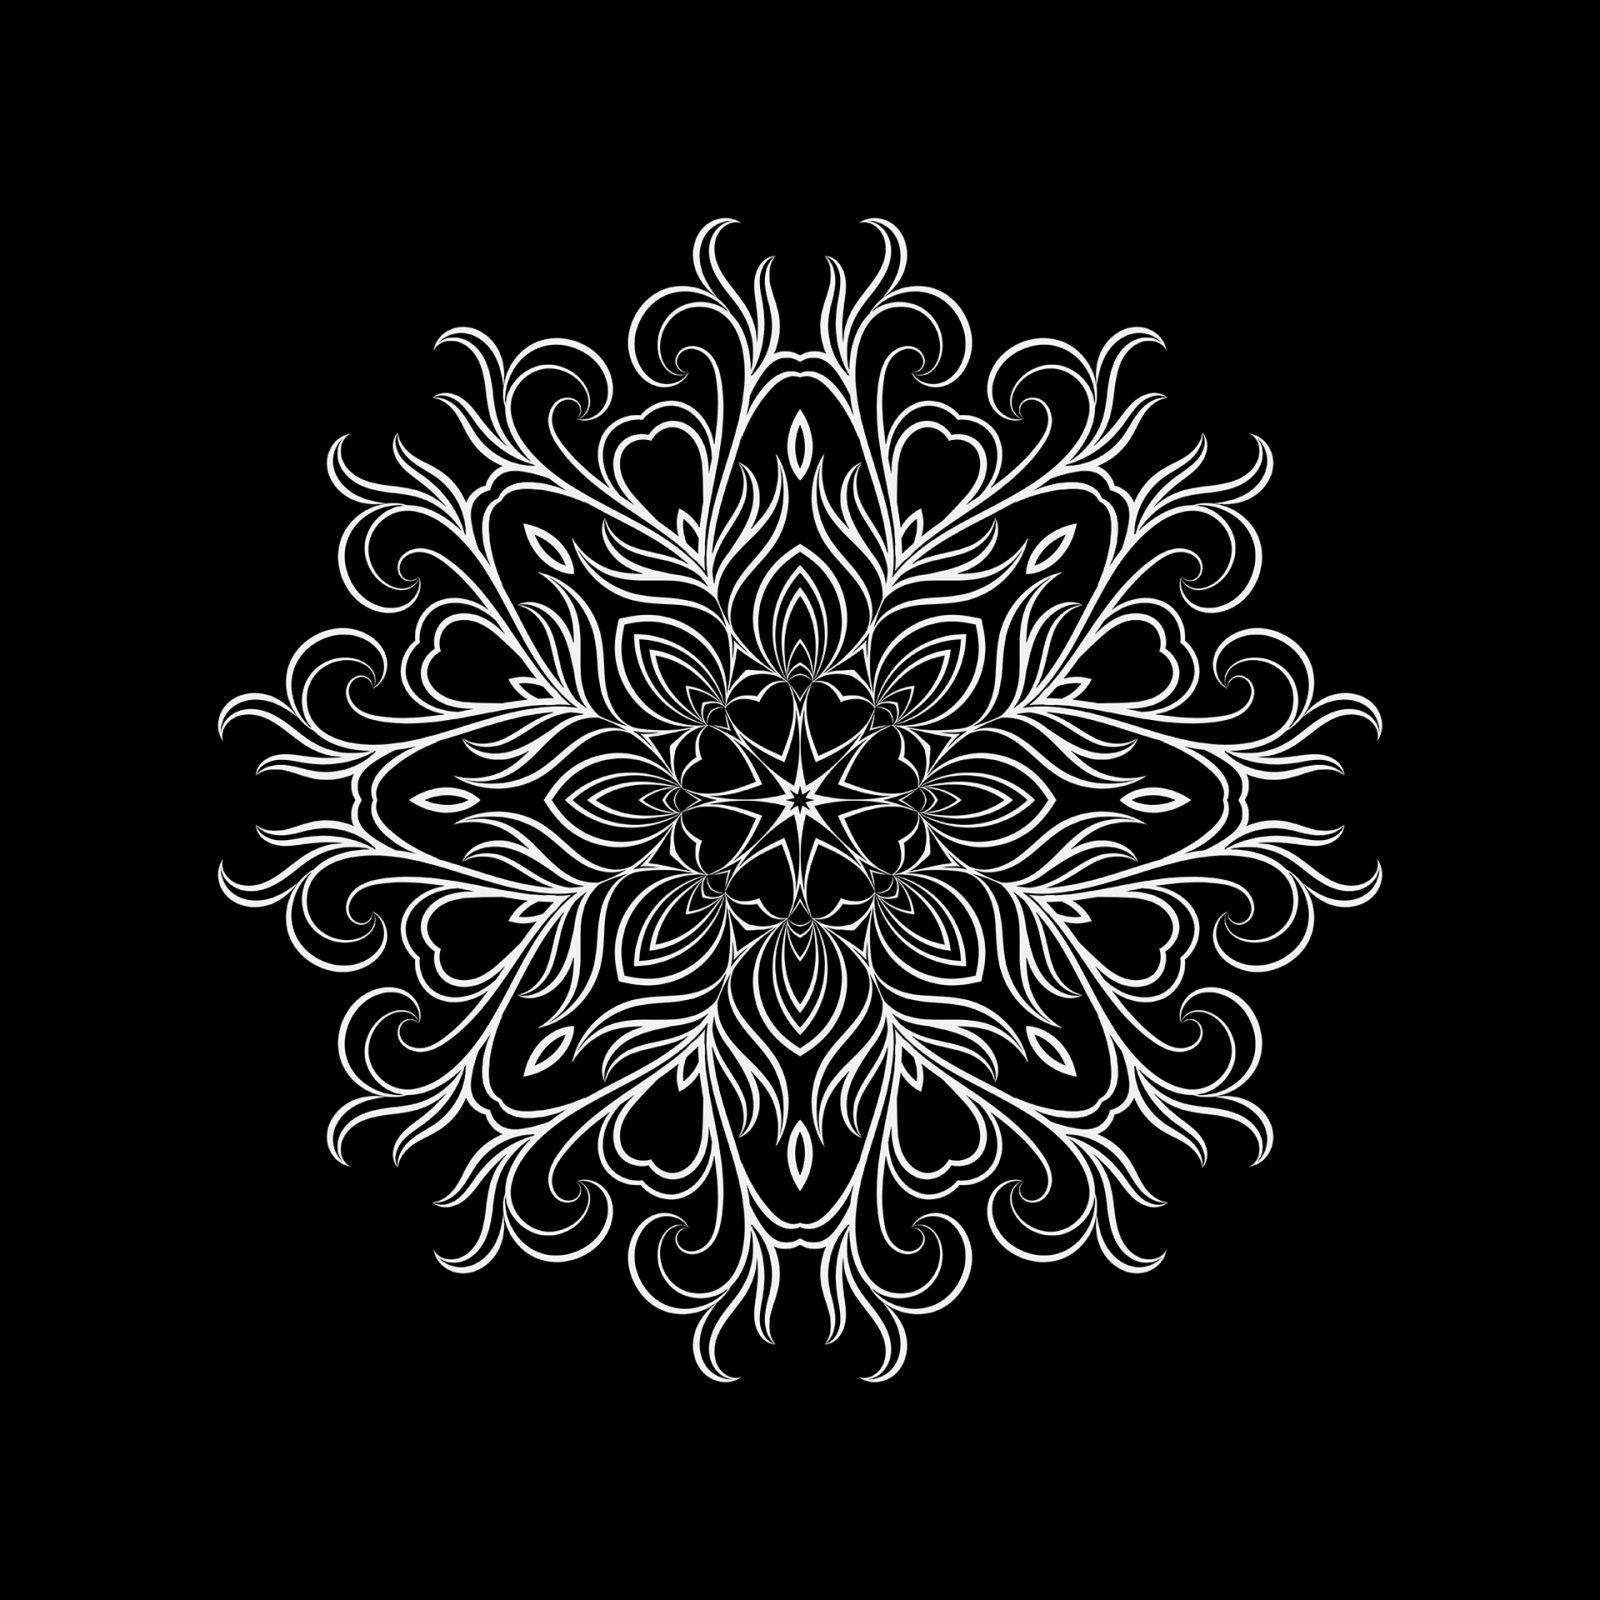 Mandala 1 - Artwork by Henry Egloff